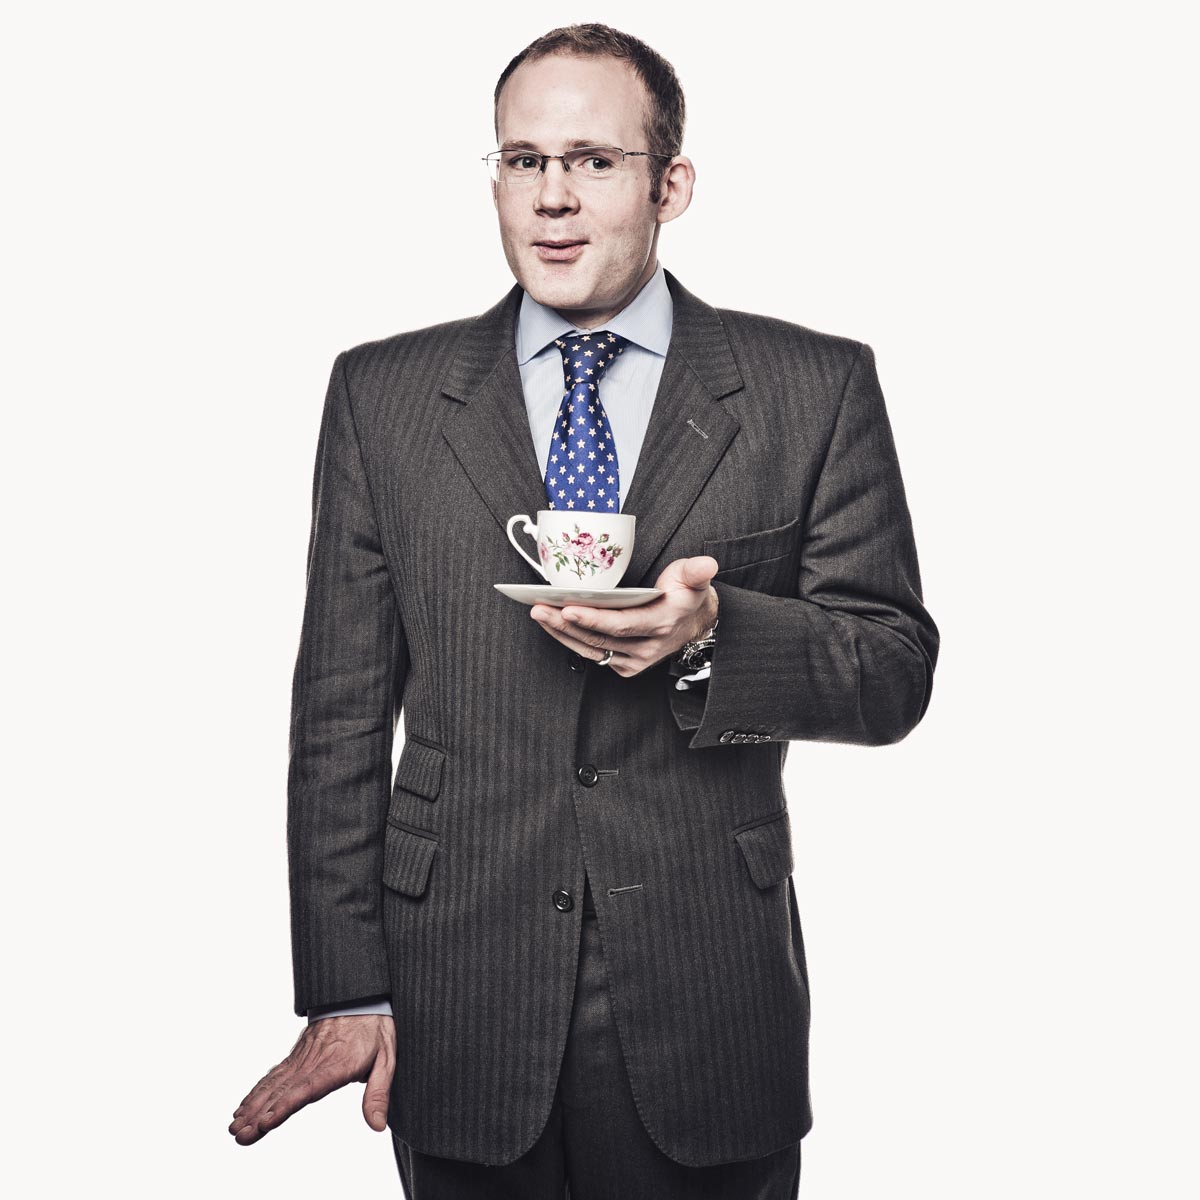 Quirky businessman with teacup